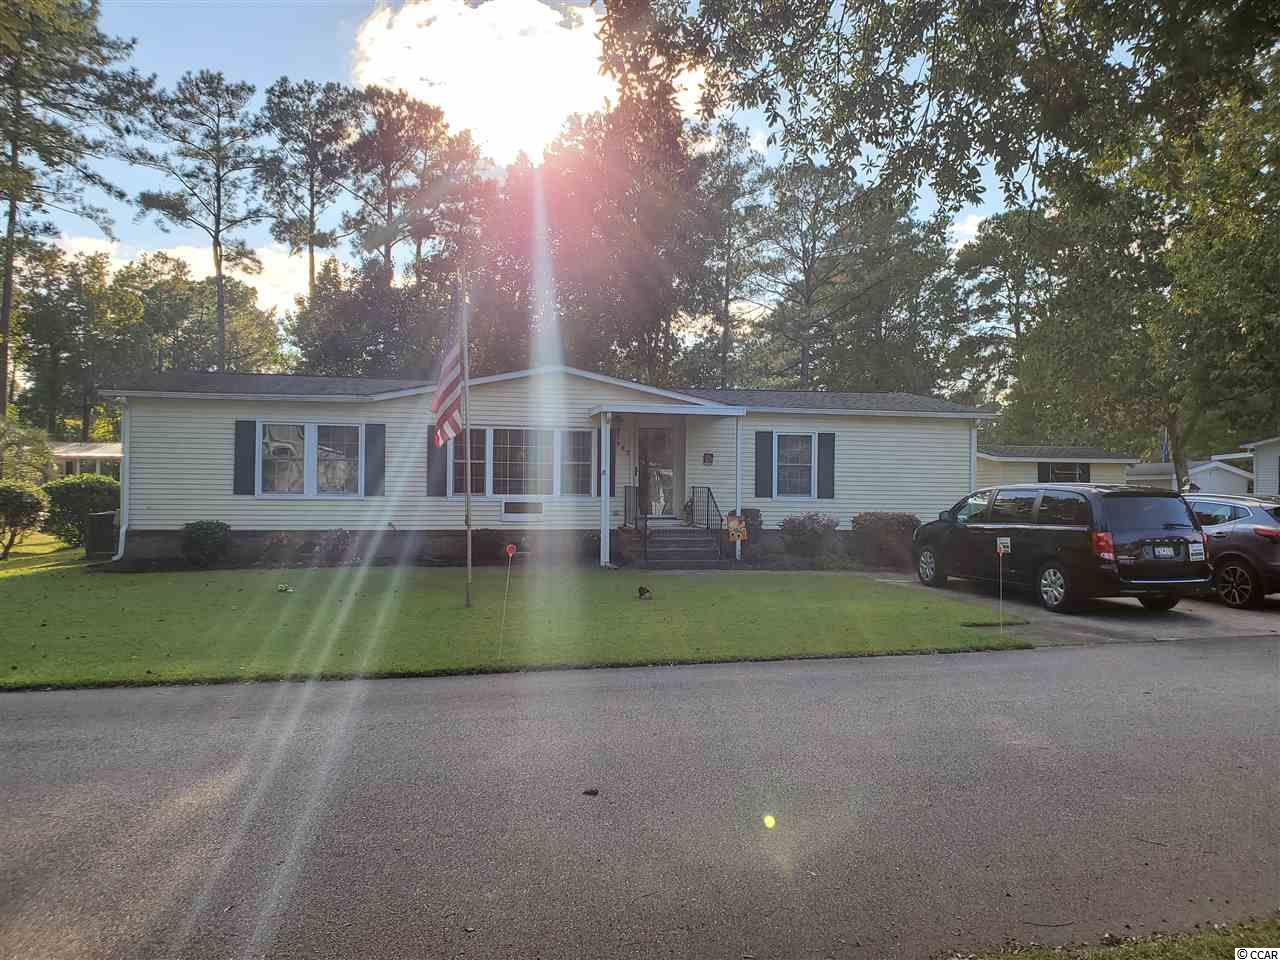 1 MILES TO GARDEN CITY BEACH . 55+ AGE COMMUNITY  , 2 POOLS  , CLUB HOUSE . 2 MILES TO MURRELLS INLET MARSH WALK. GREAT LAKE FRONT HOME  !  3 BEDROOMS ALL WITH WALK - IN CLOSETS . 2 FULL BATHROOMS . LIVING ROOM ( 13 X 18 )  , DINNING ROOM ( 13 X 9 ) , KITCHEN ( 18 X 12 ) , WITH CATHEDRAL CEILINGS .  FAMILY ROOM / CAROLINA ROOM HEATED / COOLED ( 25 X 12 ) . THE NEIGHBORHOOD HAS TWO ENTRANCES , GARDEN CITY CONNECTOR AND BUSINESS 17 HWY. Come and see this lovely, recently renovated home in the Ocean Pines 55+ community (formerly known as Jensens). This move in ready 3 bedroom home with large sun porch COOLED & HEATED . located just about a mile to the beach. New flooring throughout,  home a must have. Master Bath has a walk in shower LOW STEP  .  location ensures you easy access to all of the amenities.  Murrells Inlet has to offer including fine dining, the marsh walk and Shopping. Community has two pools for you to use as well as a community club house that offers lots of activities for the residents to participate in. Shed in the SIDE yard  Monthly fee includes the pool, club house and trash pick up. Pets allowed. What are you waiting for???  OPEN FLOOR PLAN . !!!   golf cart distance to the BEACH. 1 MILE AS THE CROW FLIES  !!!! , flag pole IN FRONT YARD . This is a golf cart friendly community, pets allowed. Rules apply.